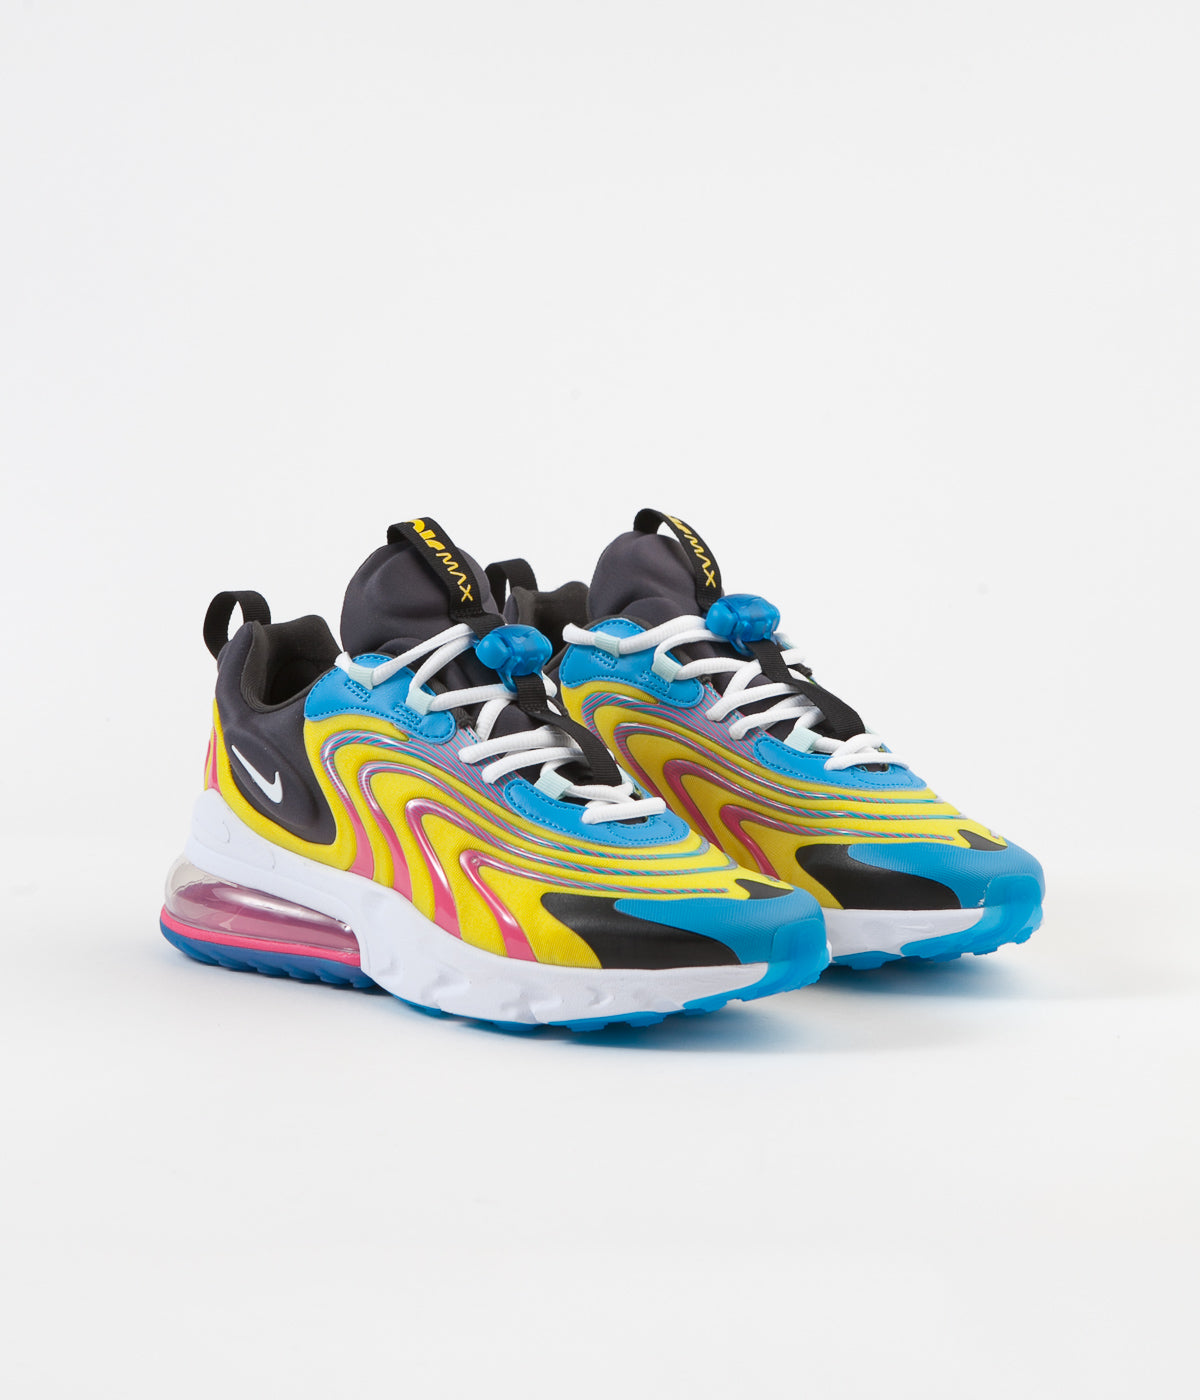 Nike Air Max 270 React Eng Shoes Laser Blue White Anthracite W Always In Colour